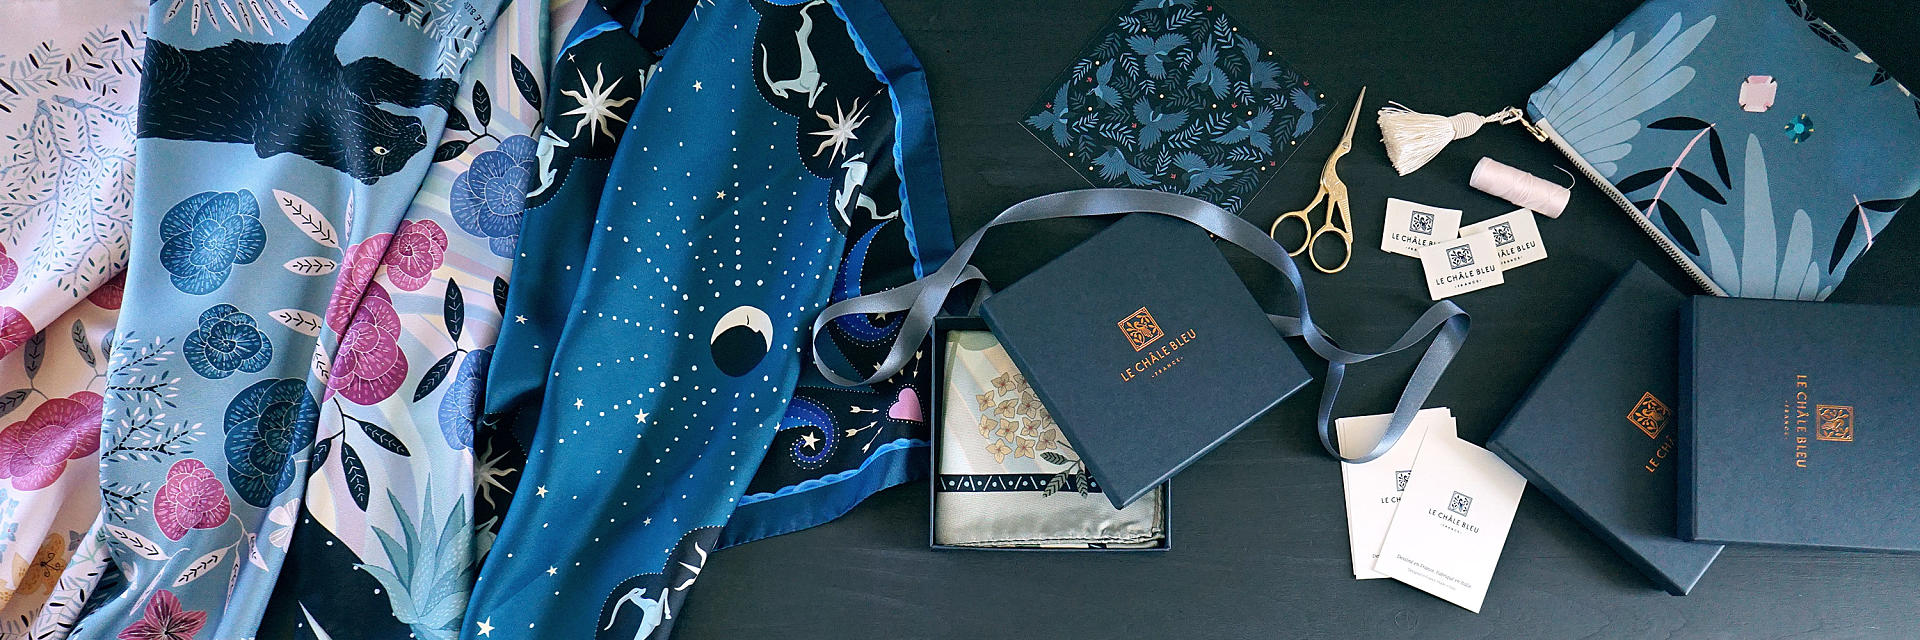 Le Châle Bleu Silk twill scarves gift packaging